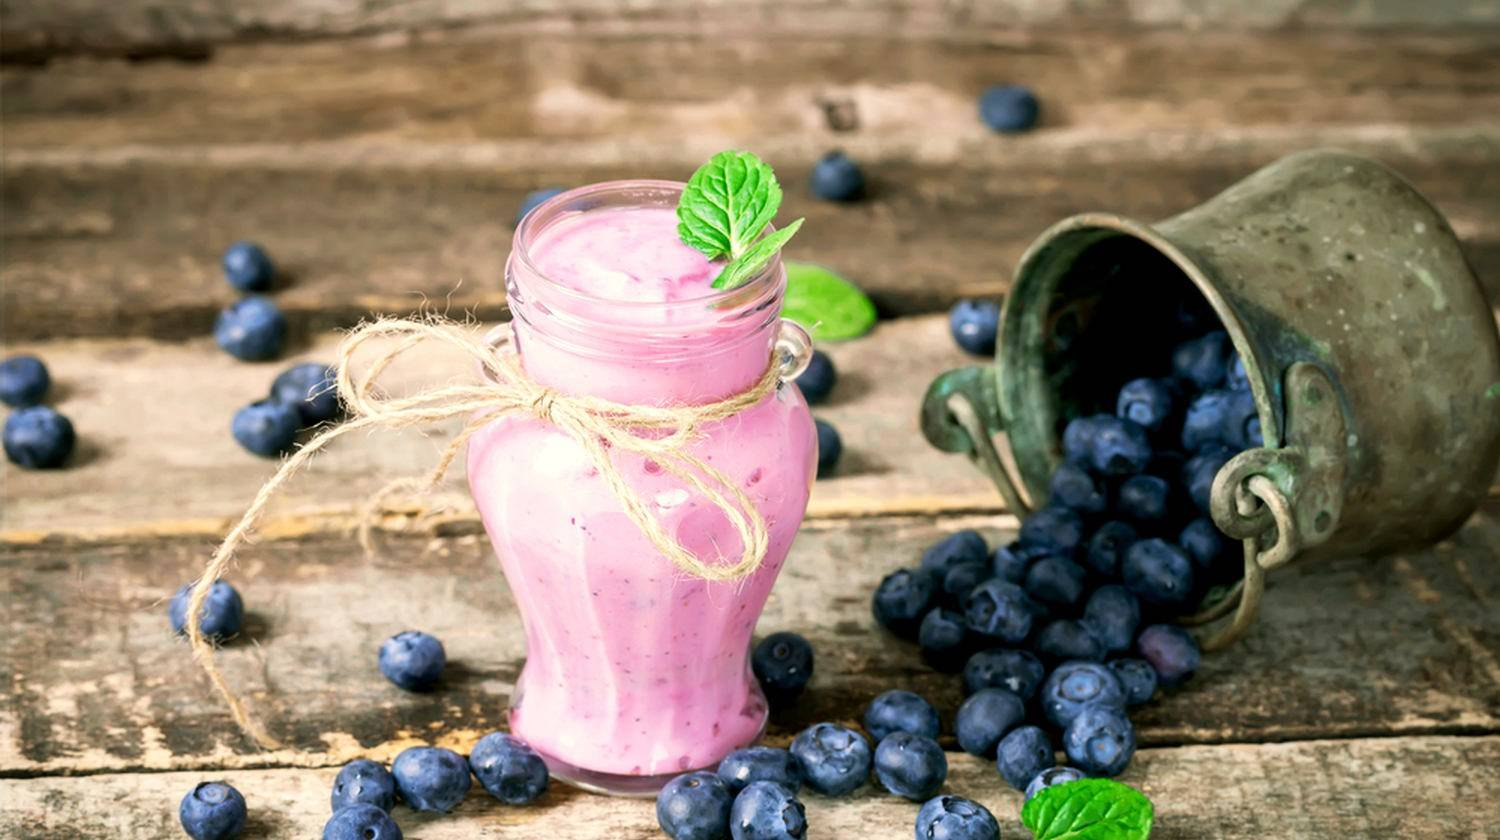 Blueberry smoothie with blueberries on wooden background | Plant-Based Keto Protein Blueberry Smoothie | keto smoothie recipe | Featured